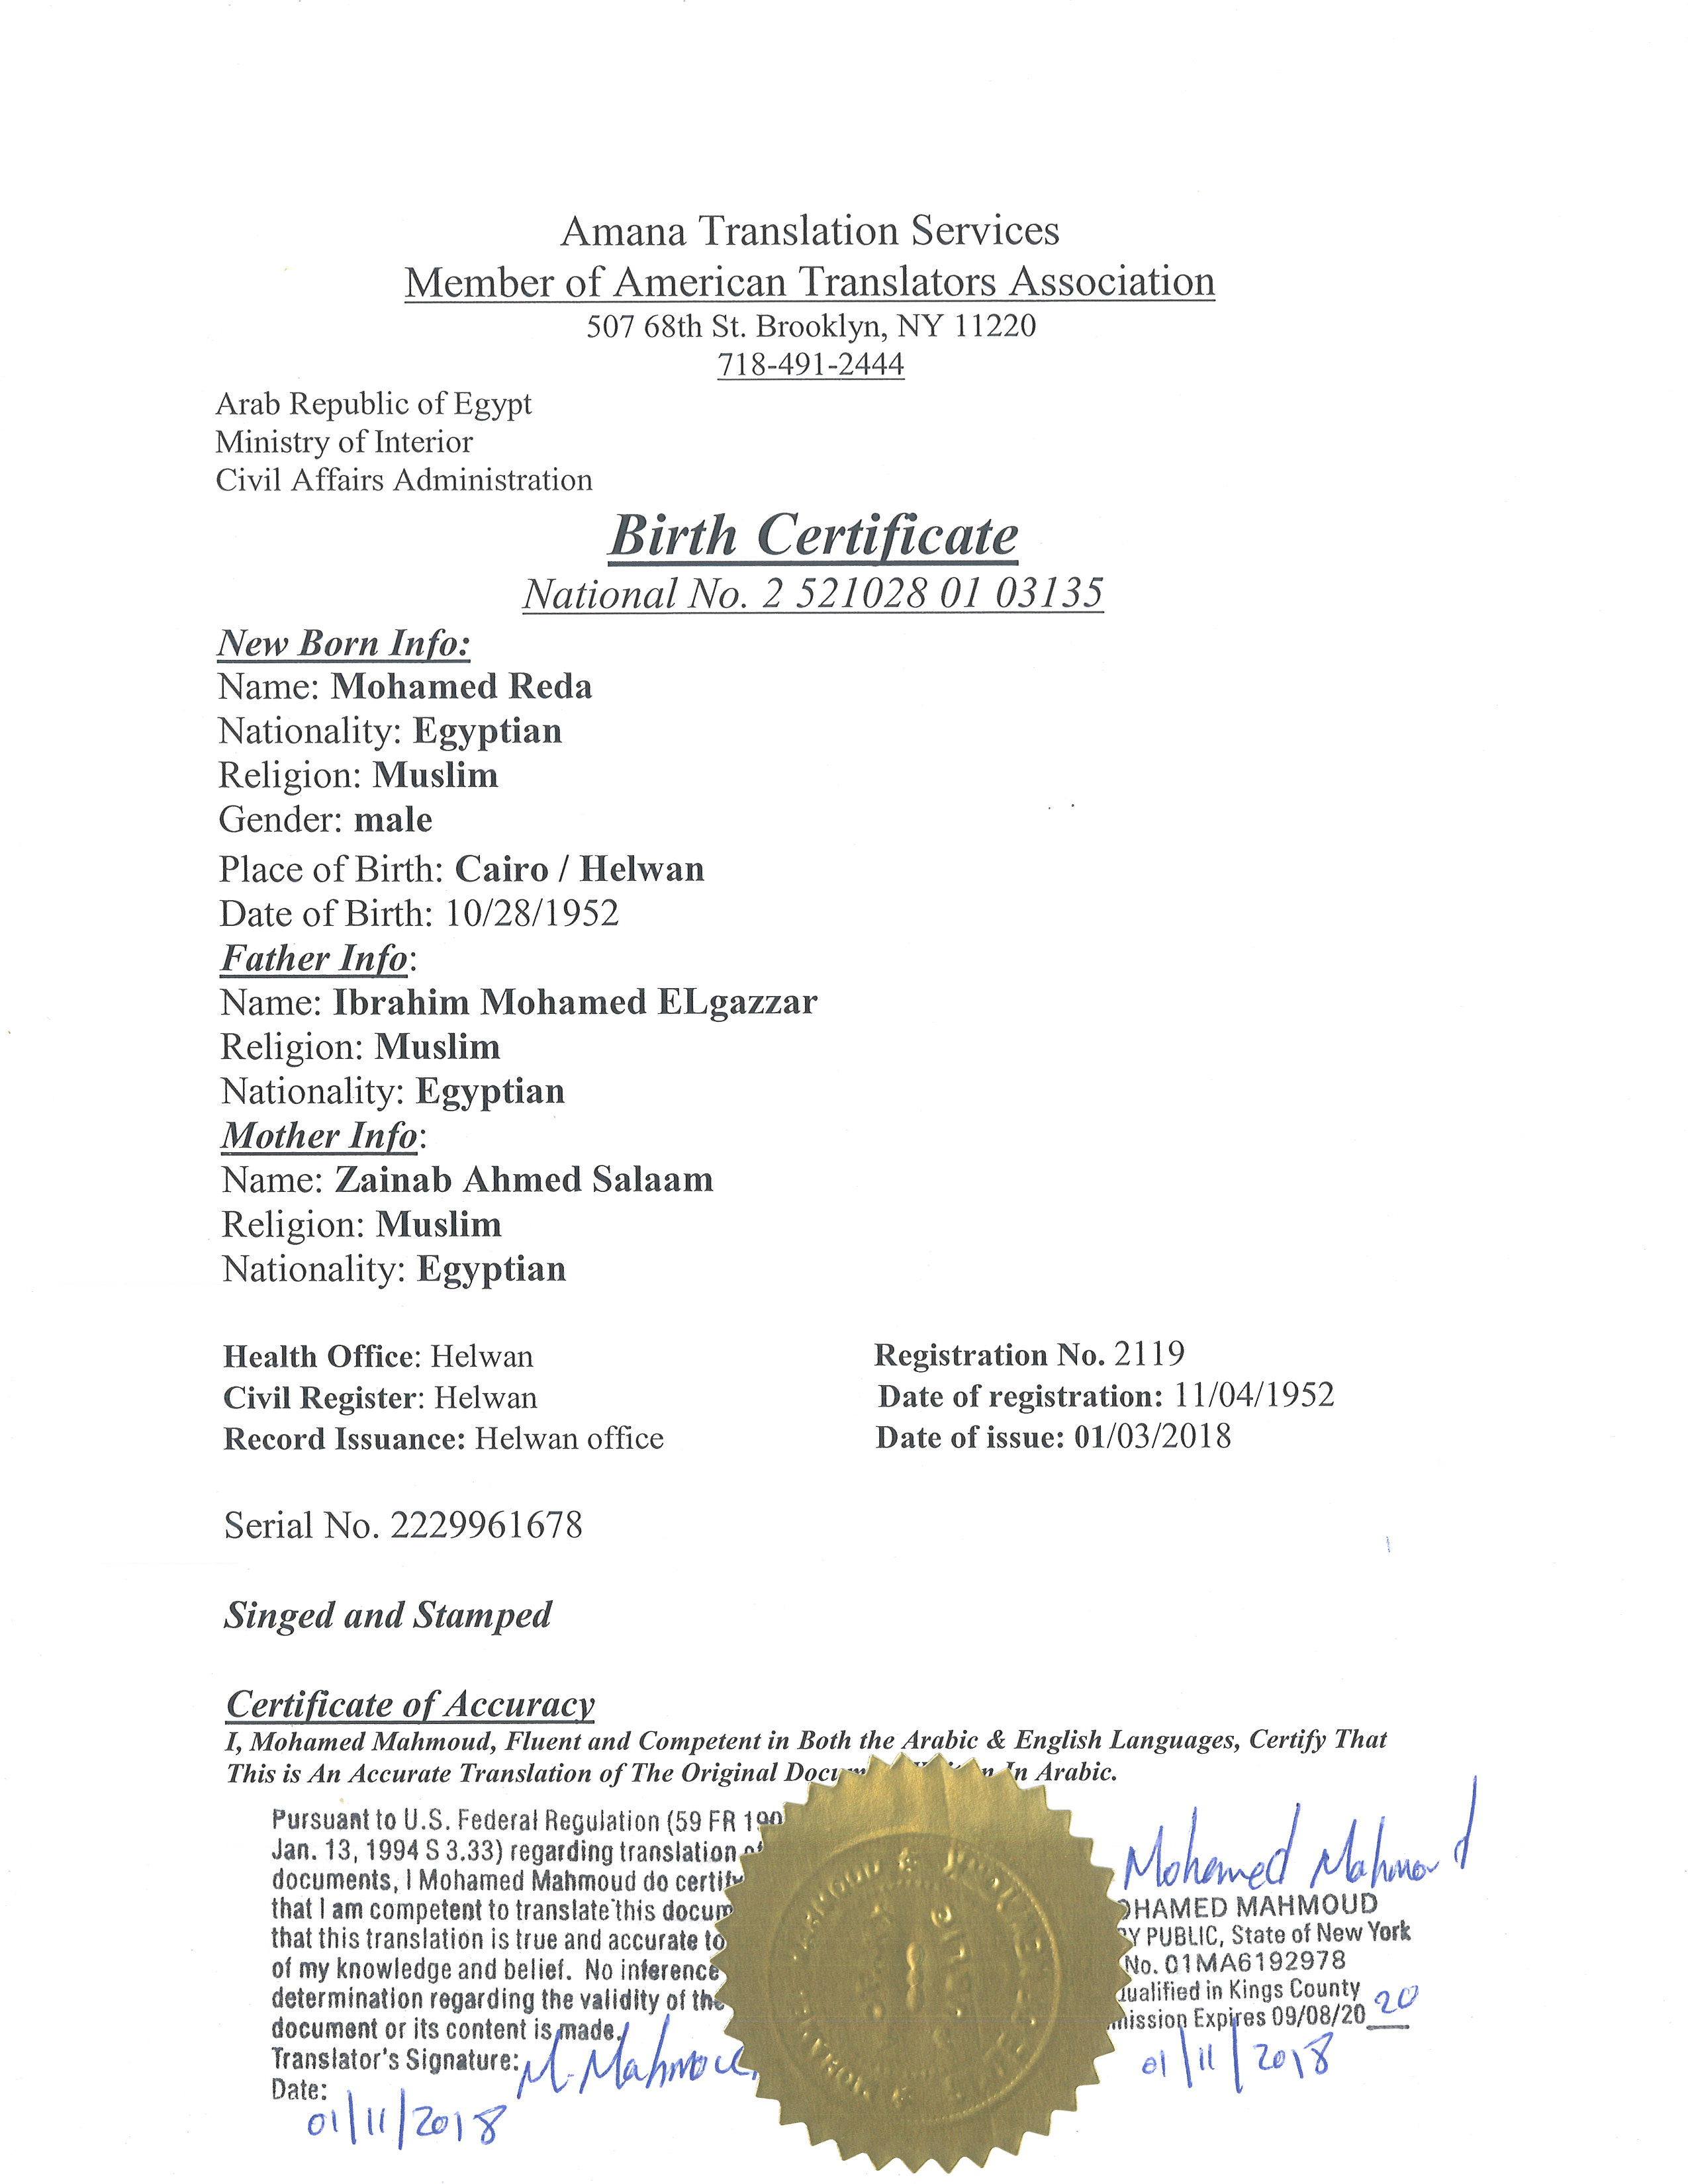 Legal Certification Translation In Brooklyn Amana Printing